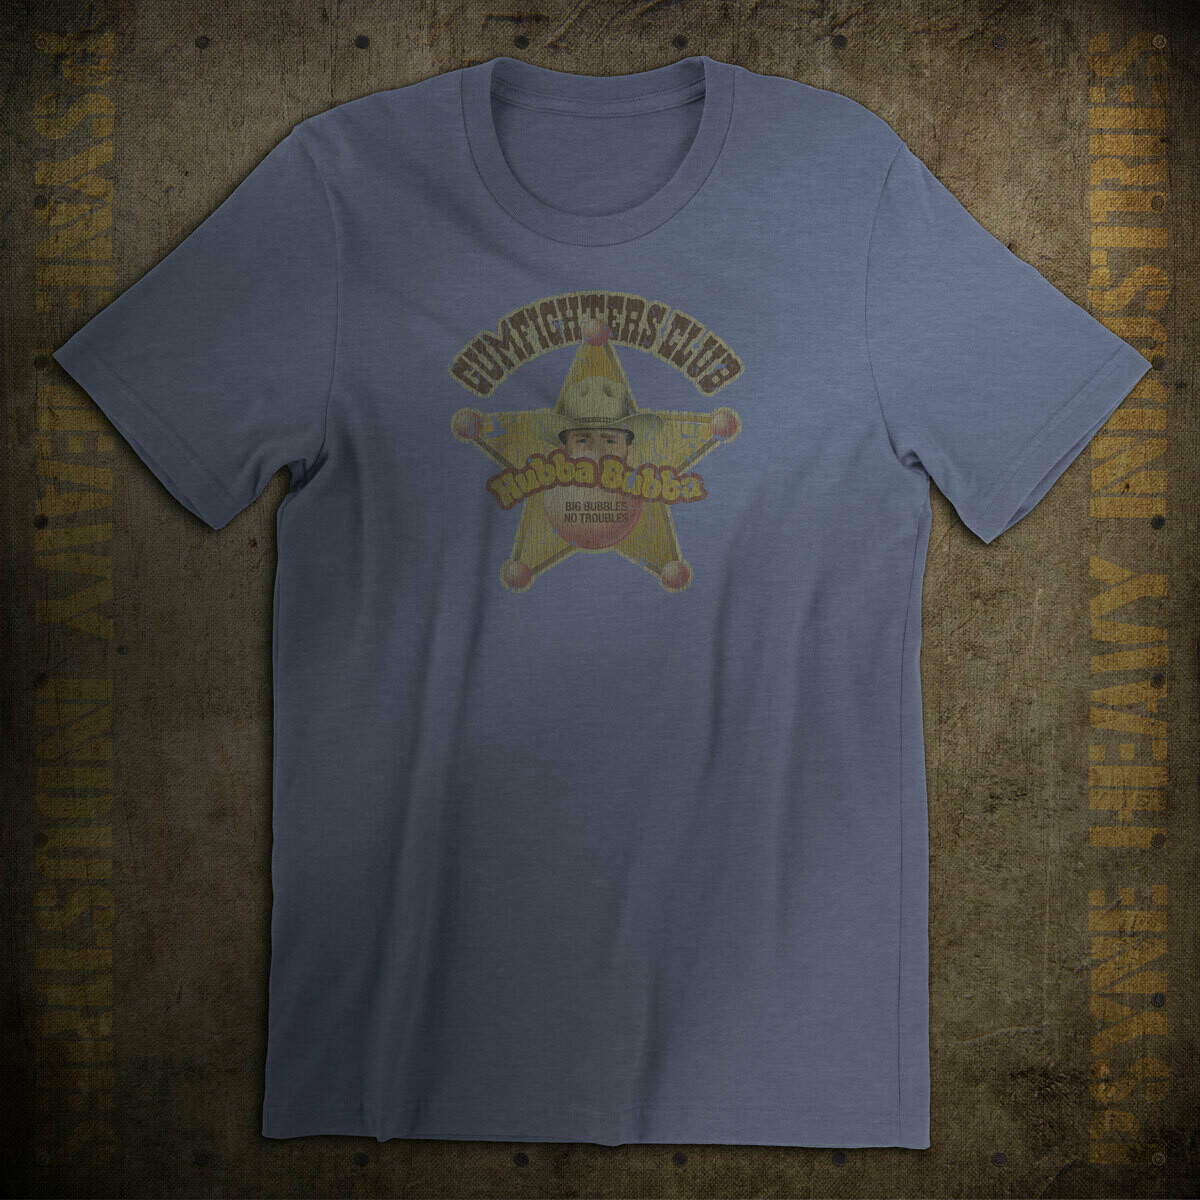 Hubba Bubba Gumfighter's Club Vintage 1979 T-Shirt